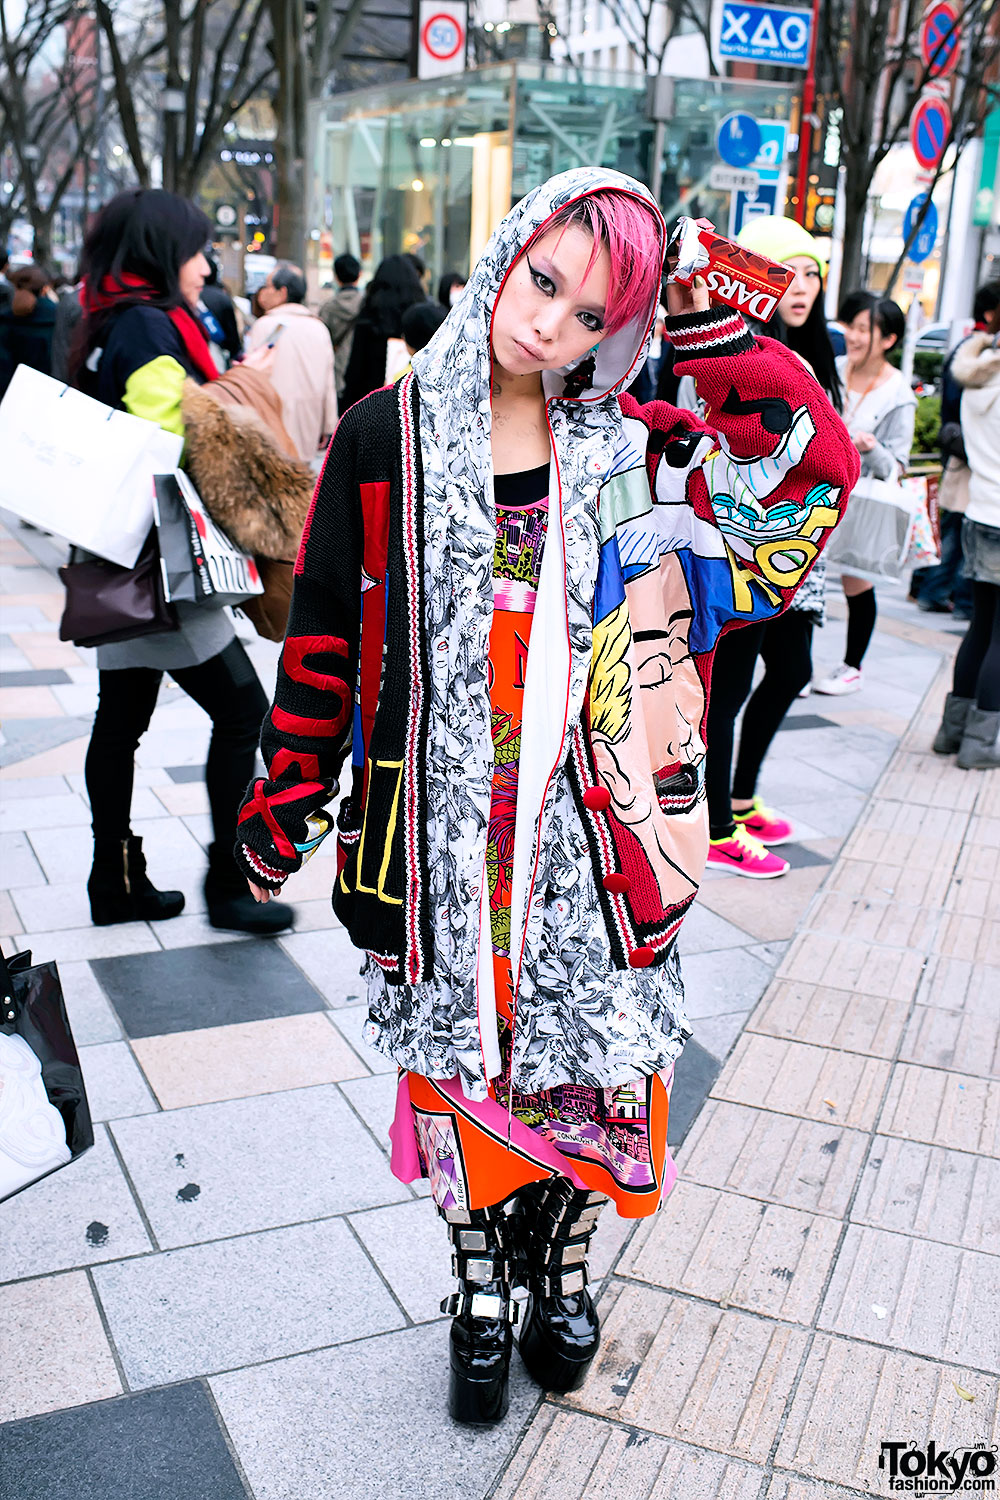 Street japan on pinterest tokyo fashion harajuku and japanese street fashion Japanese fashion style icon